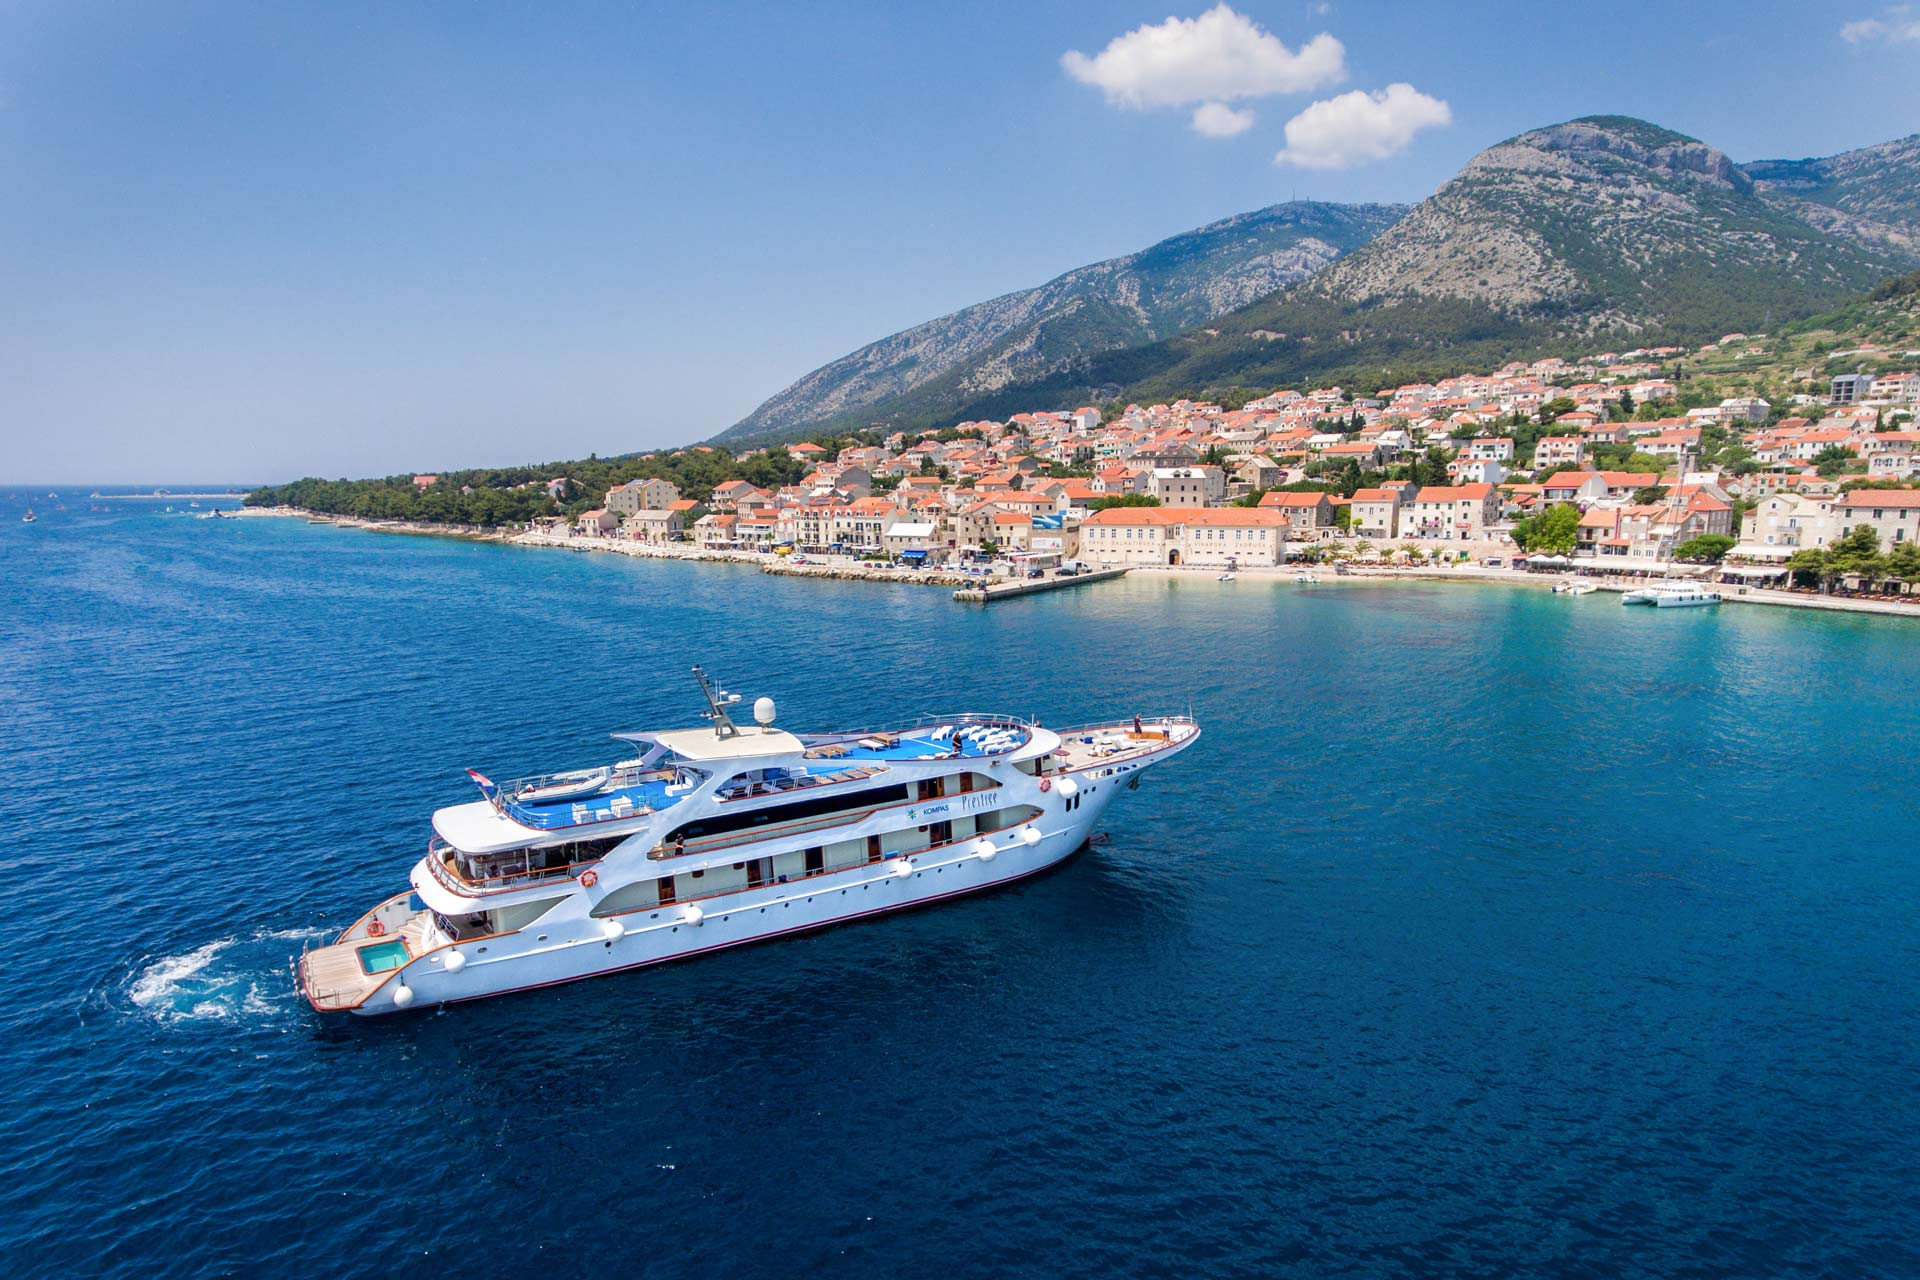 MS Prestige - Small Cruise Ship - Cruise Croatia